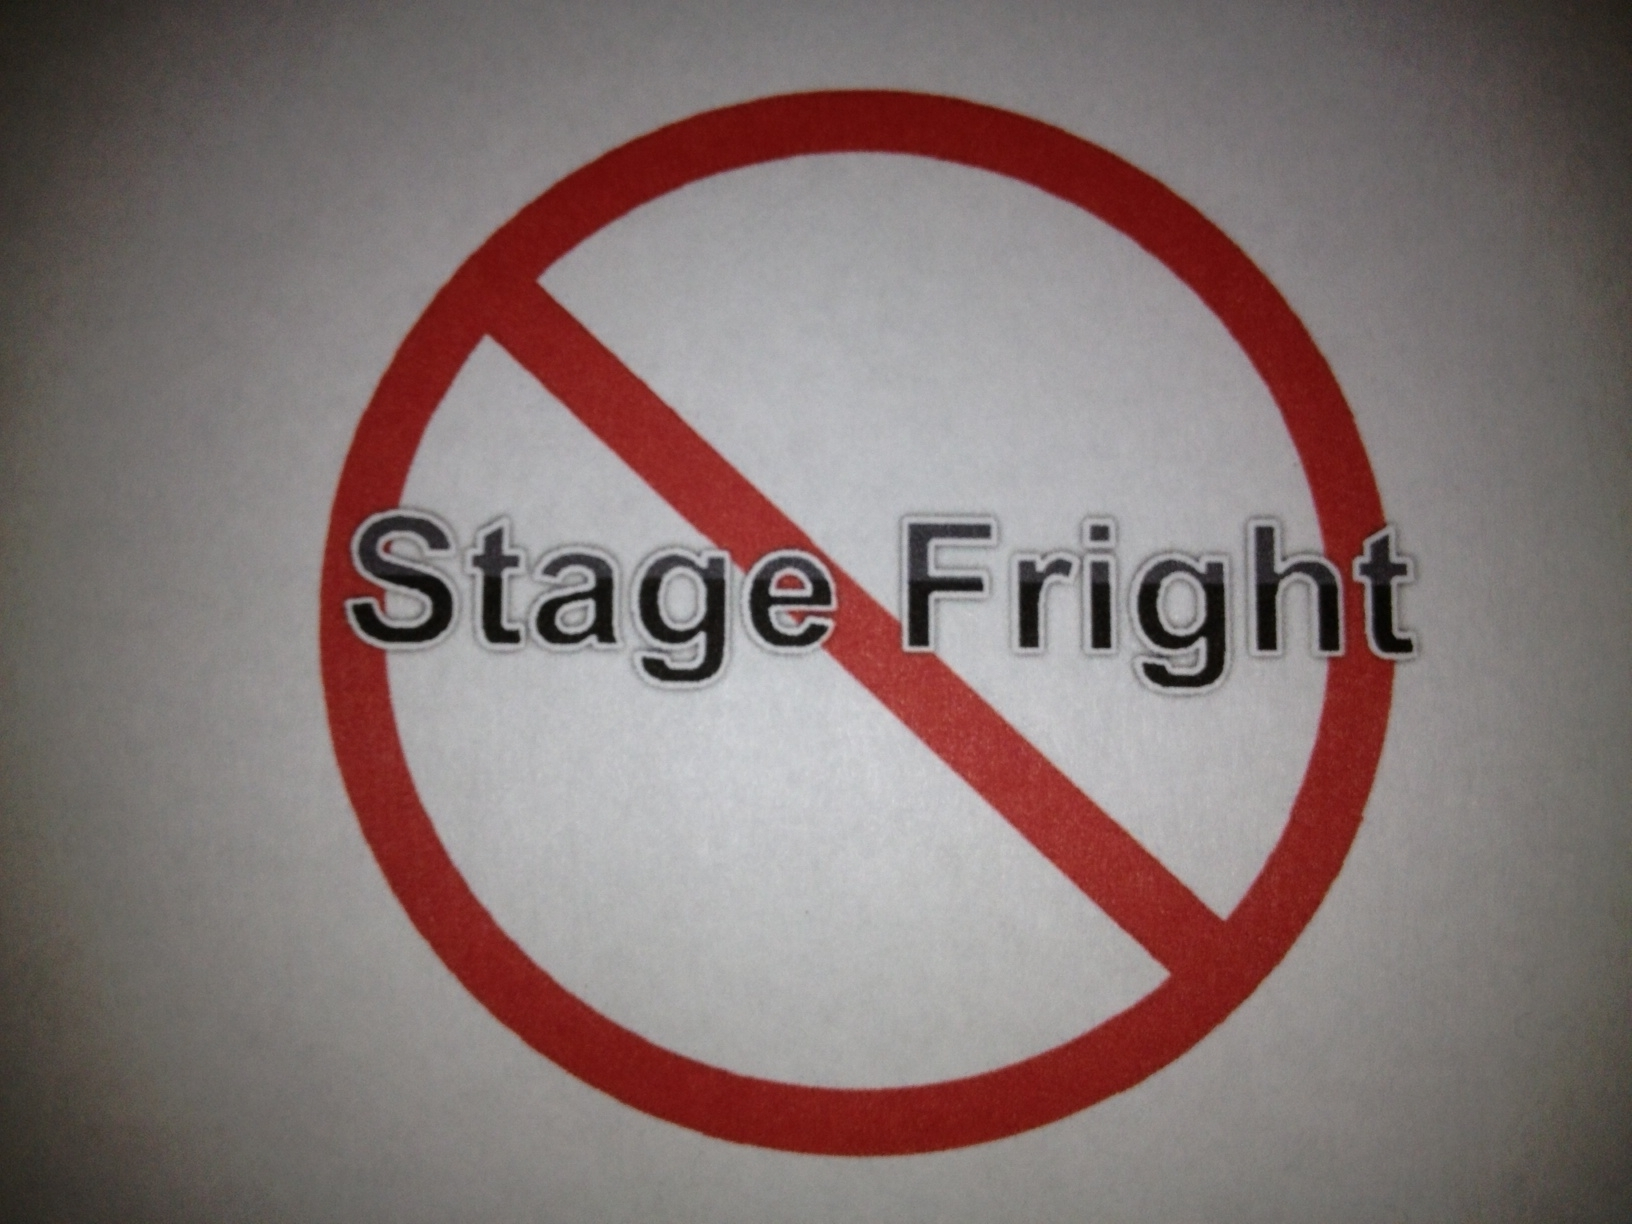 no stage fright  chris cady www.nostagefright.com